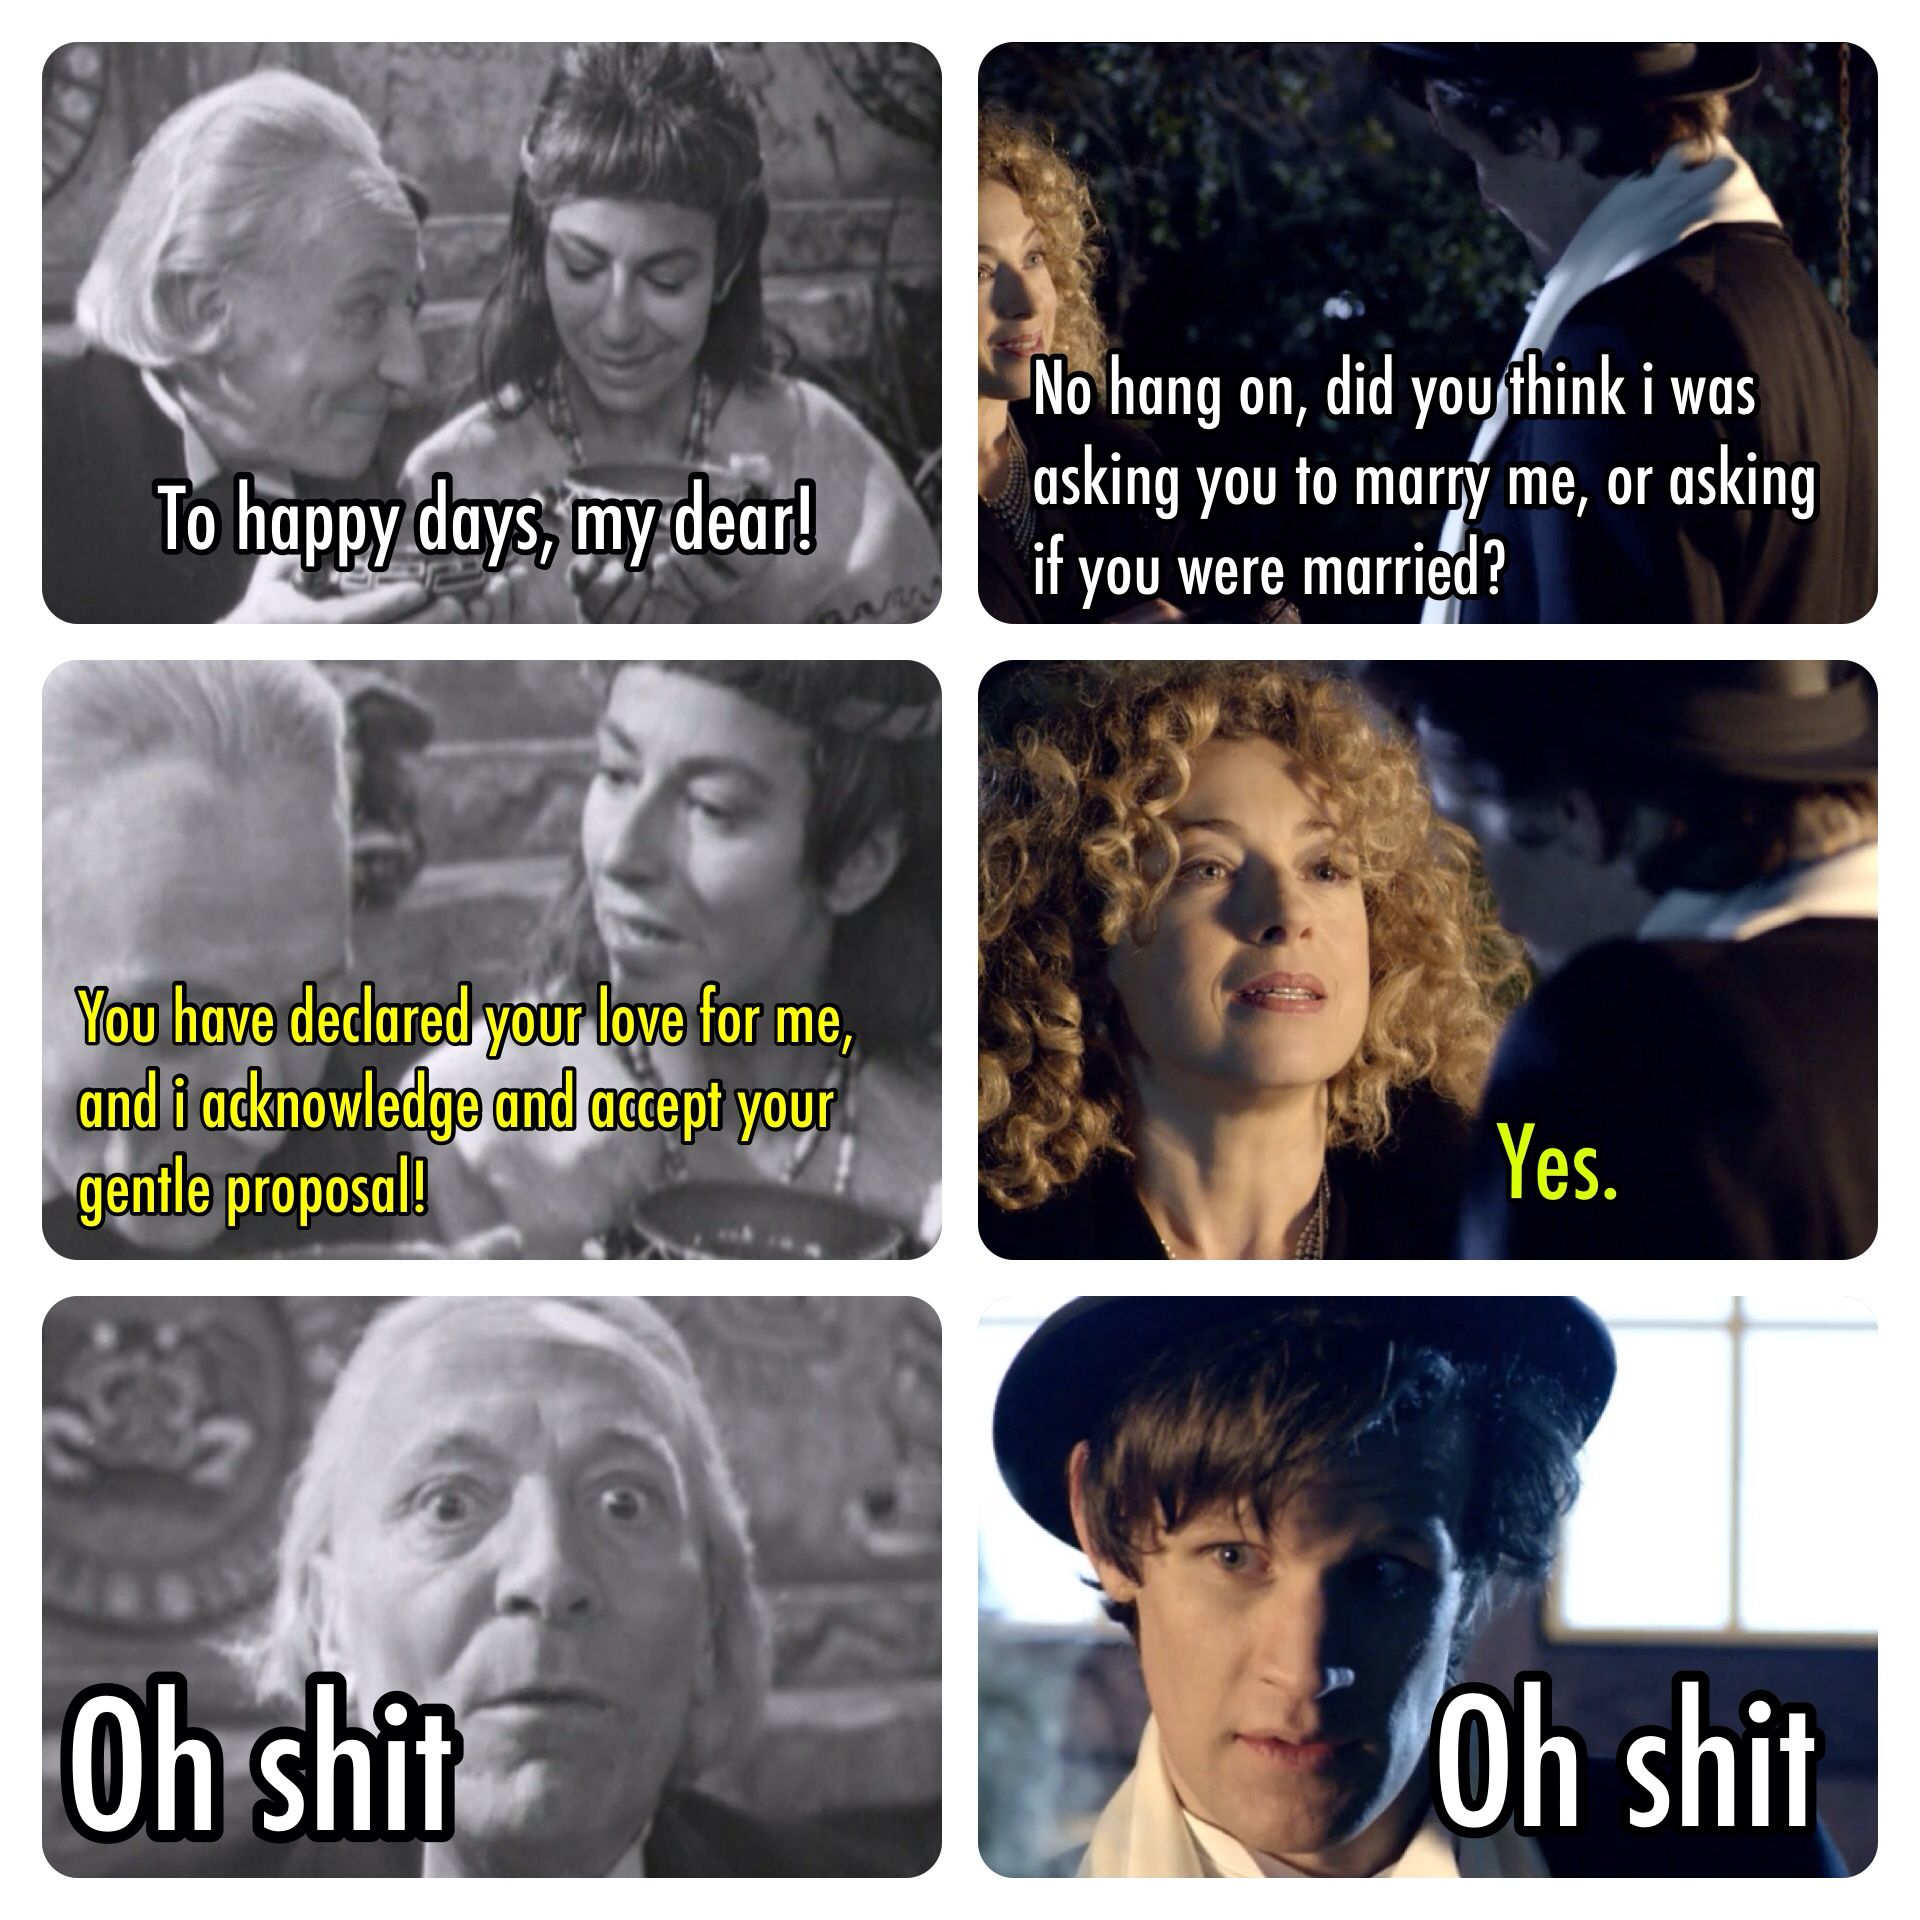 218a0ab2cf040 The doctor  accidentally proposing to people since day one   These ...